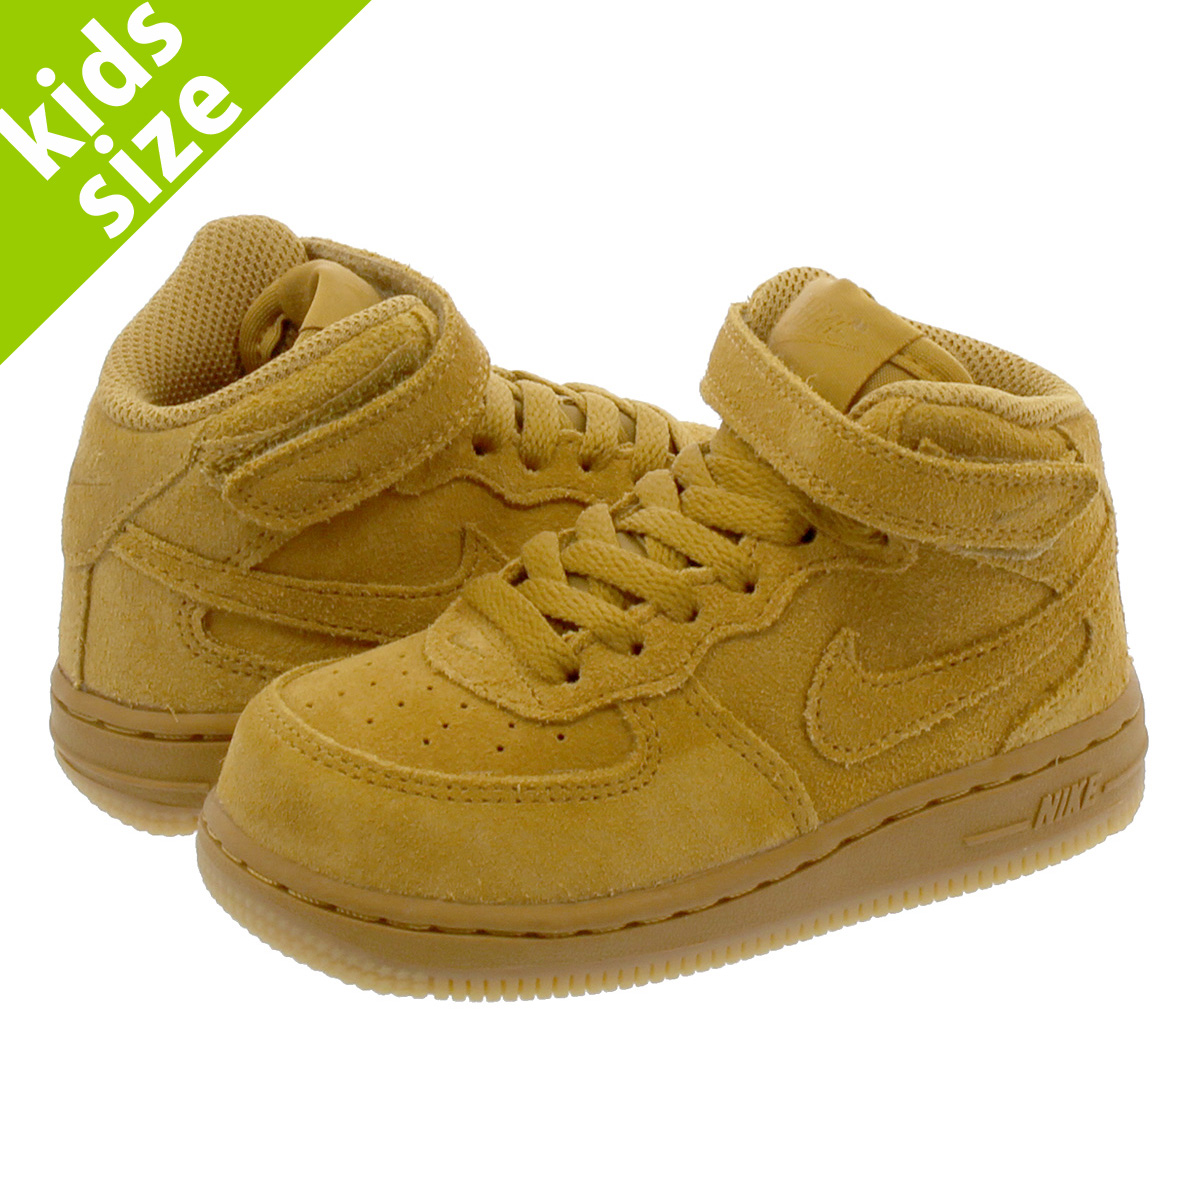 Nike NIKE air force 1 kids sneakers AIR FORCE 1 MID LV8 PS 859,337 701 ウィート [1810]